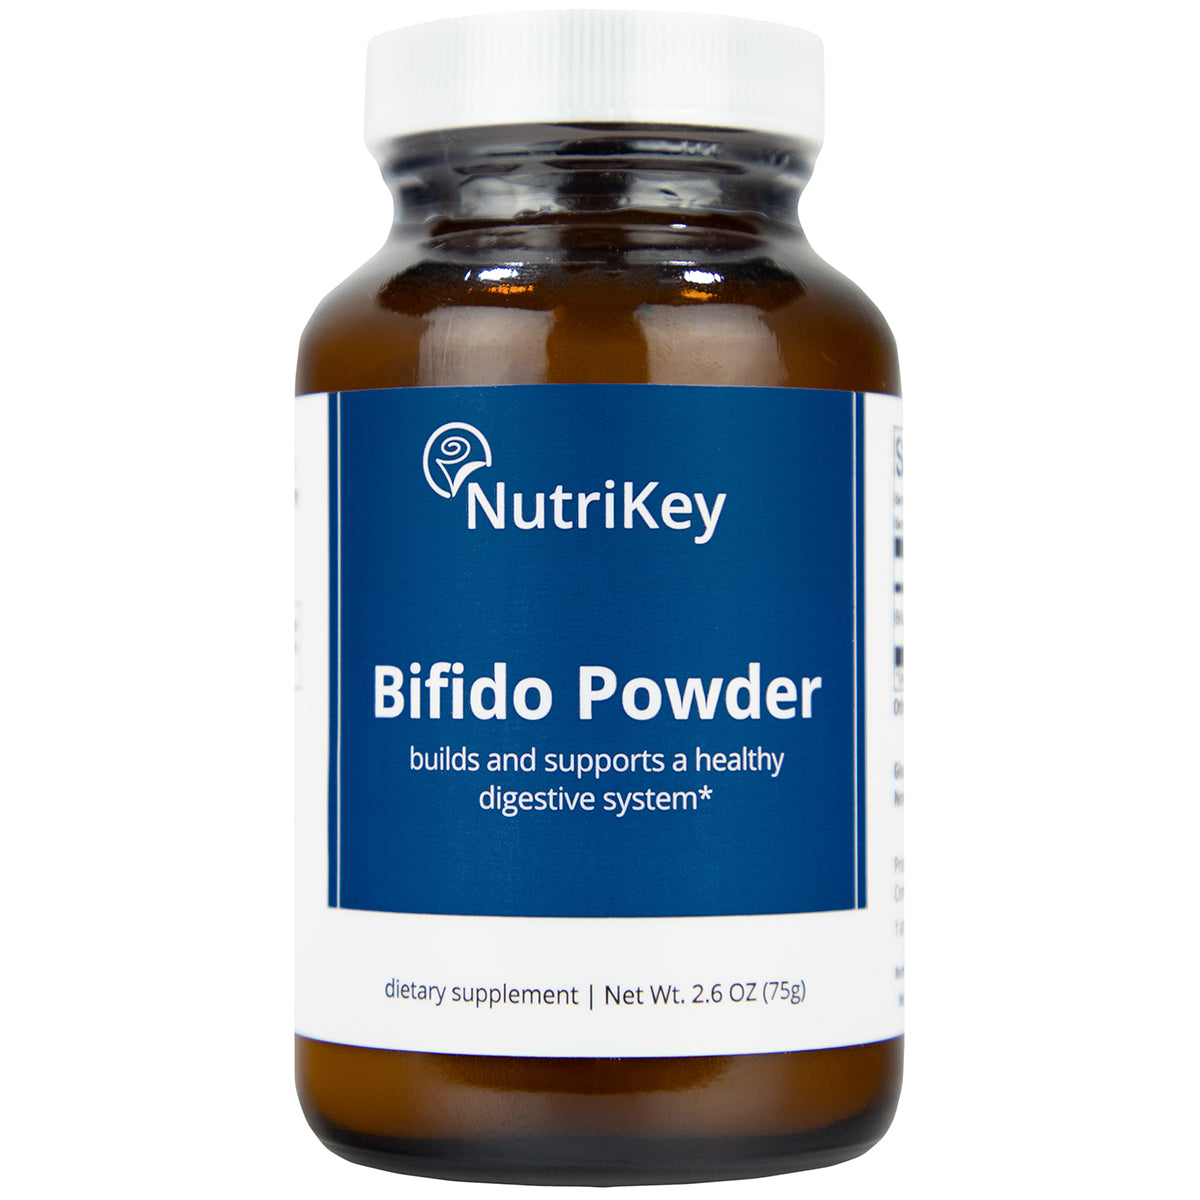 BIFIDO POWDER, 2.6 oz